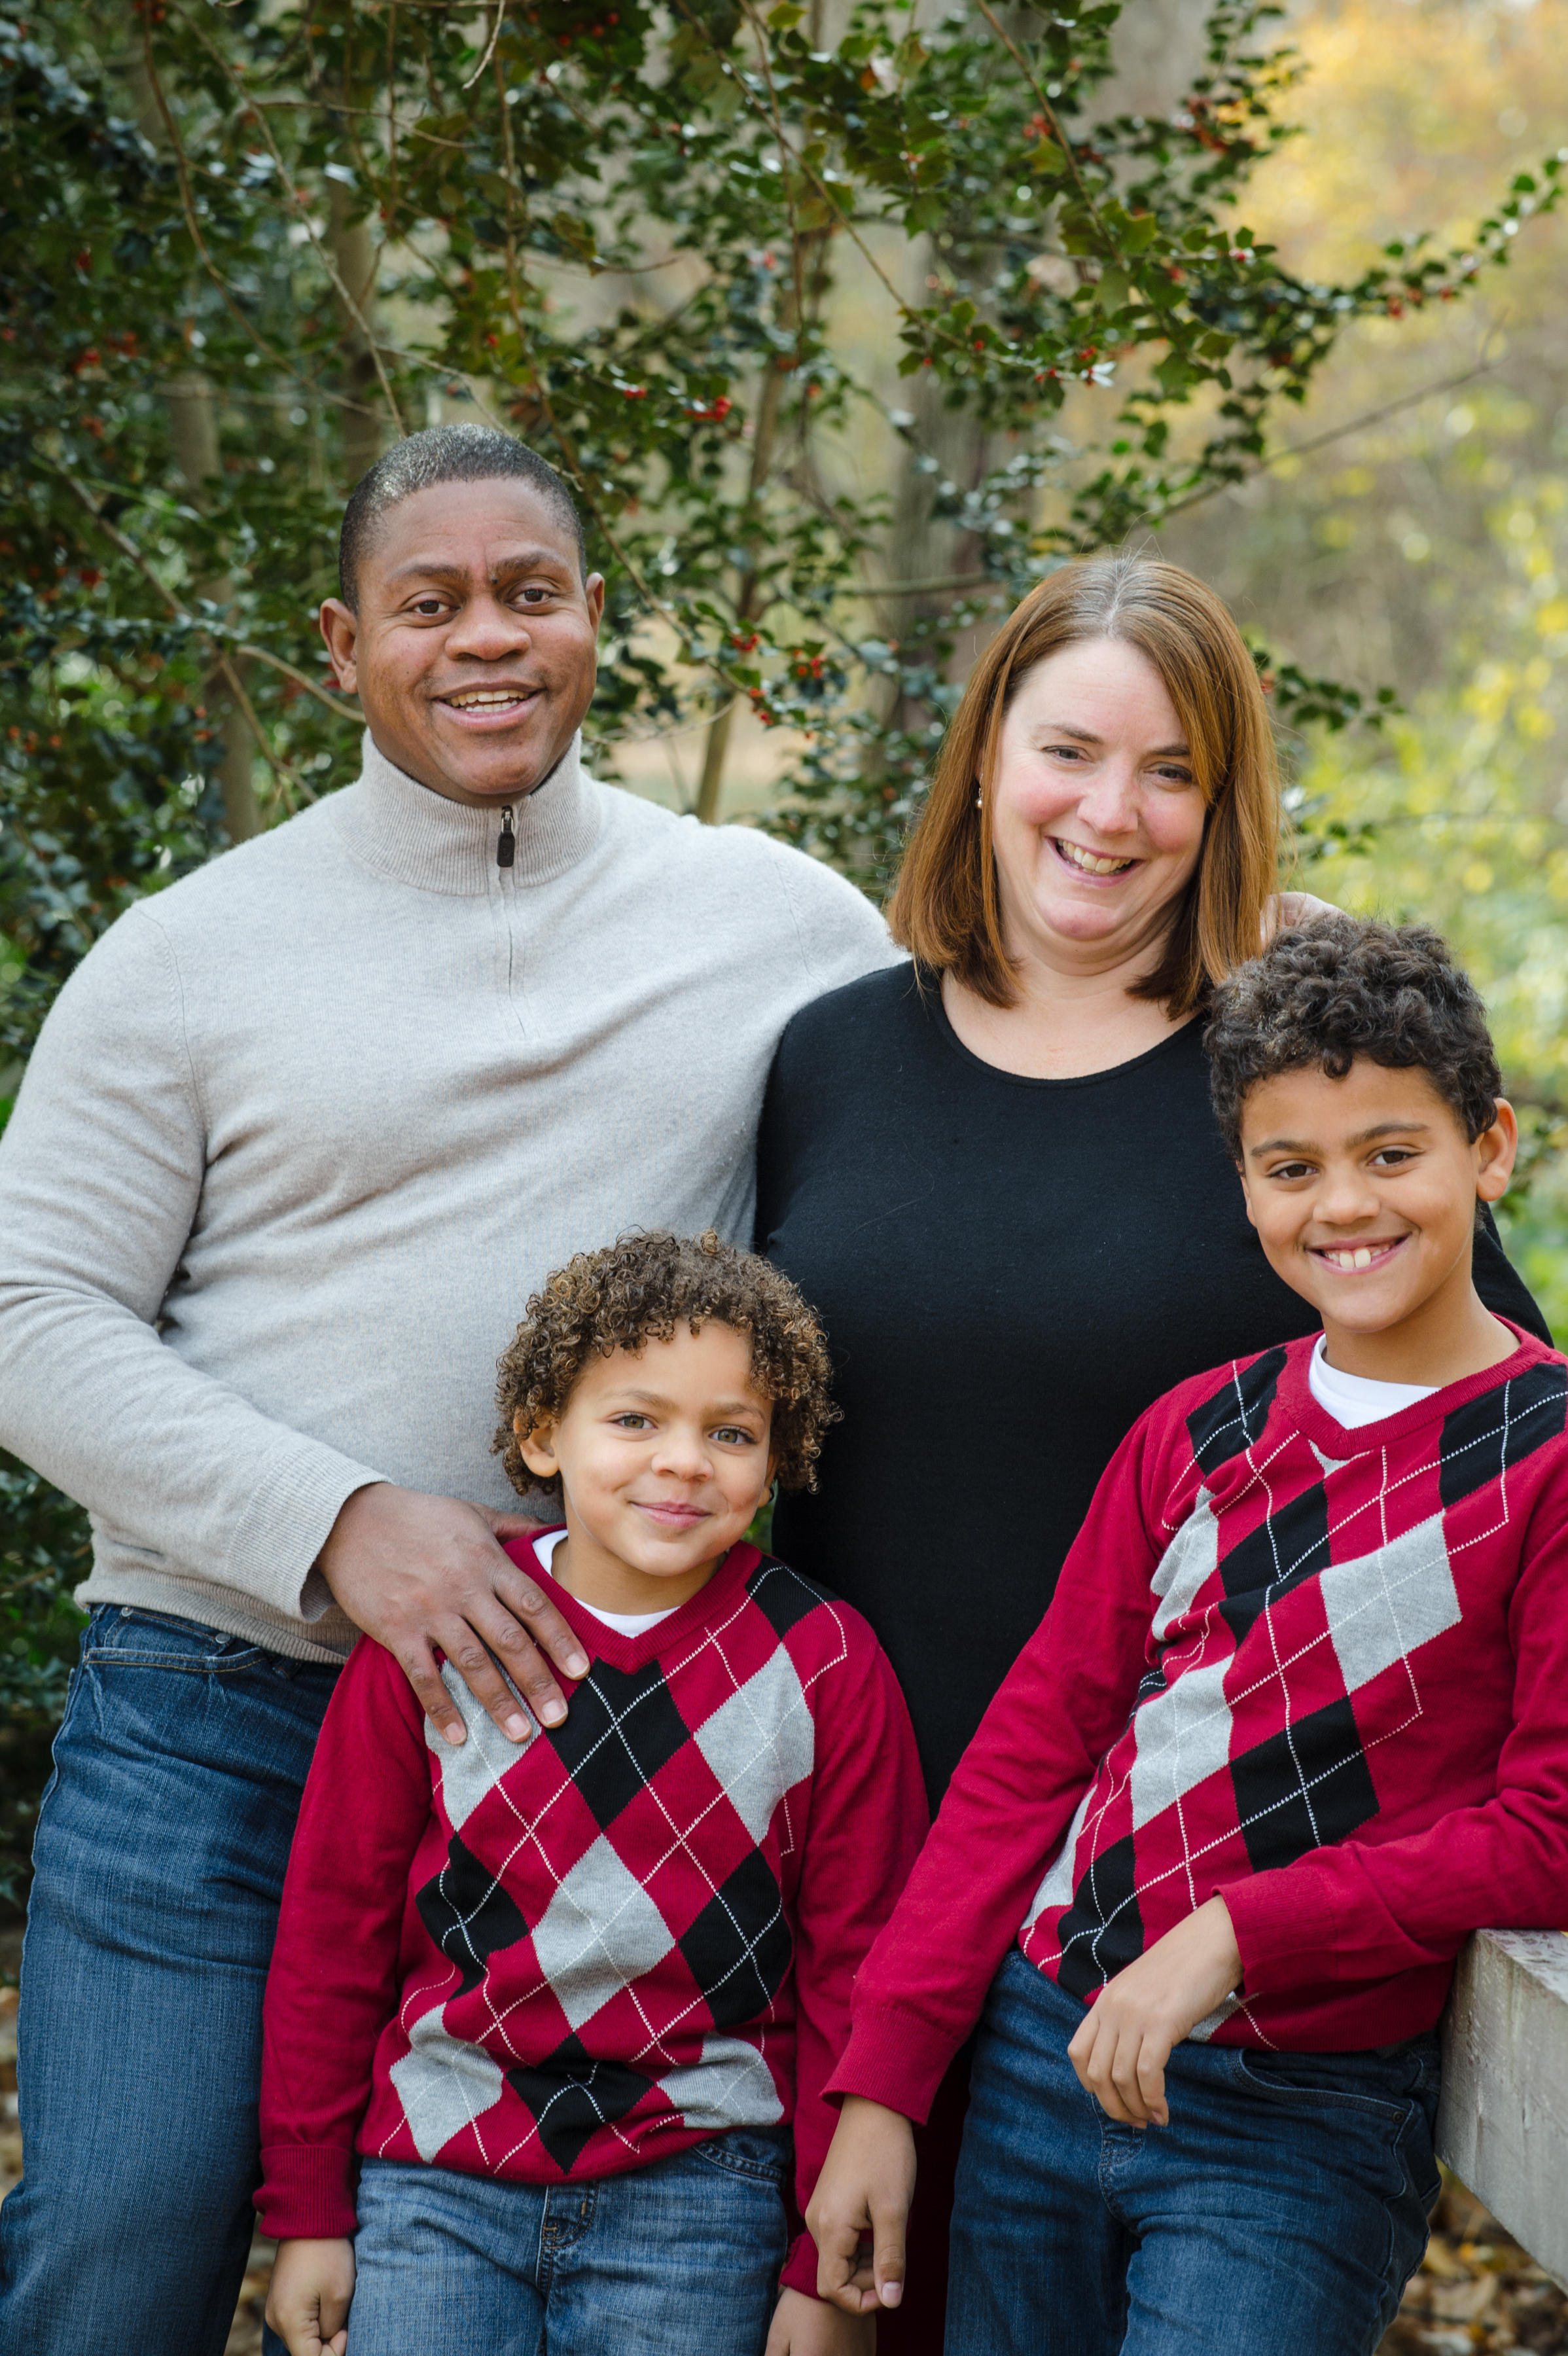 Parents and two children in matching sweaters smile during autumn family photo session in Boston Massachusetts Michelle Schapiro Photography